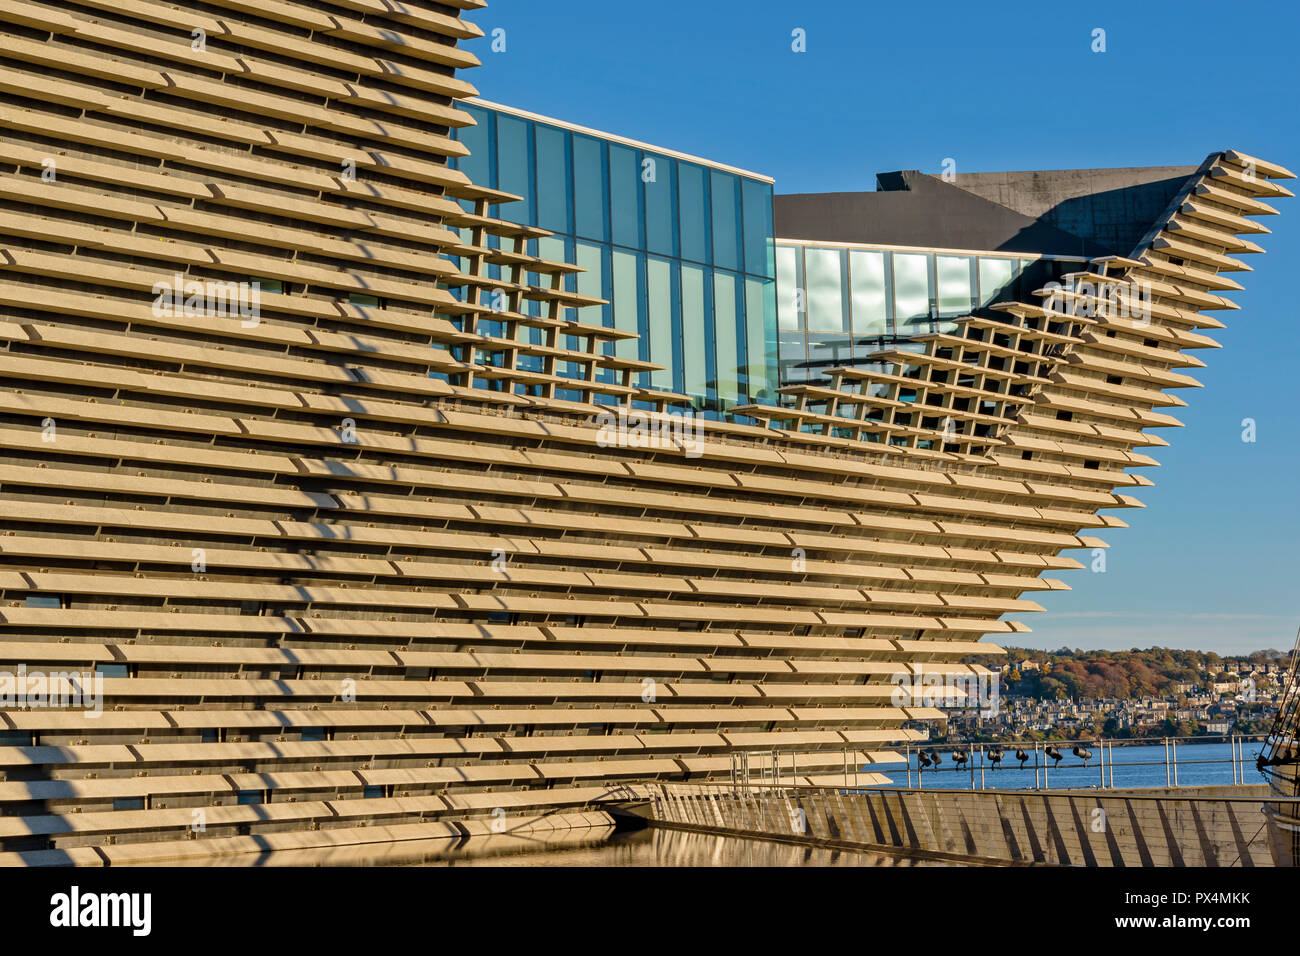 V & A MUSEUM OF DESIGN DUNDEE SCOTLAND THE PROW AND WINDOWS OF THE RESTAURANT Stock Photo